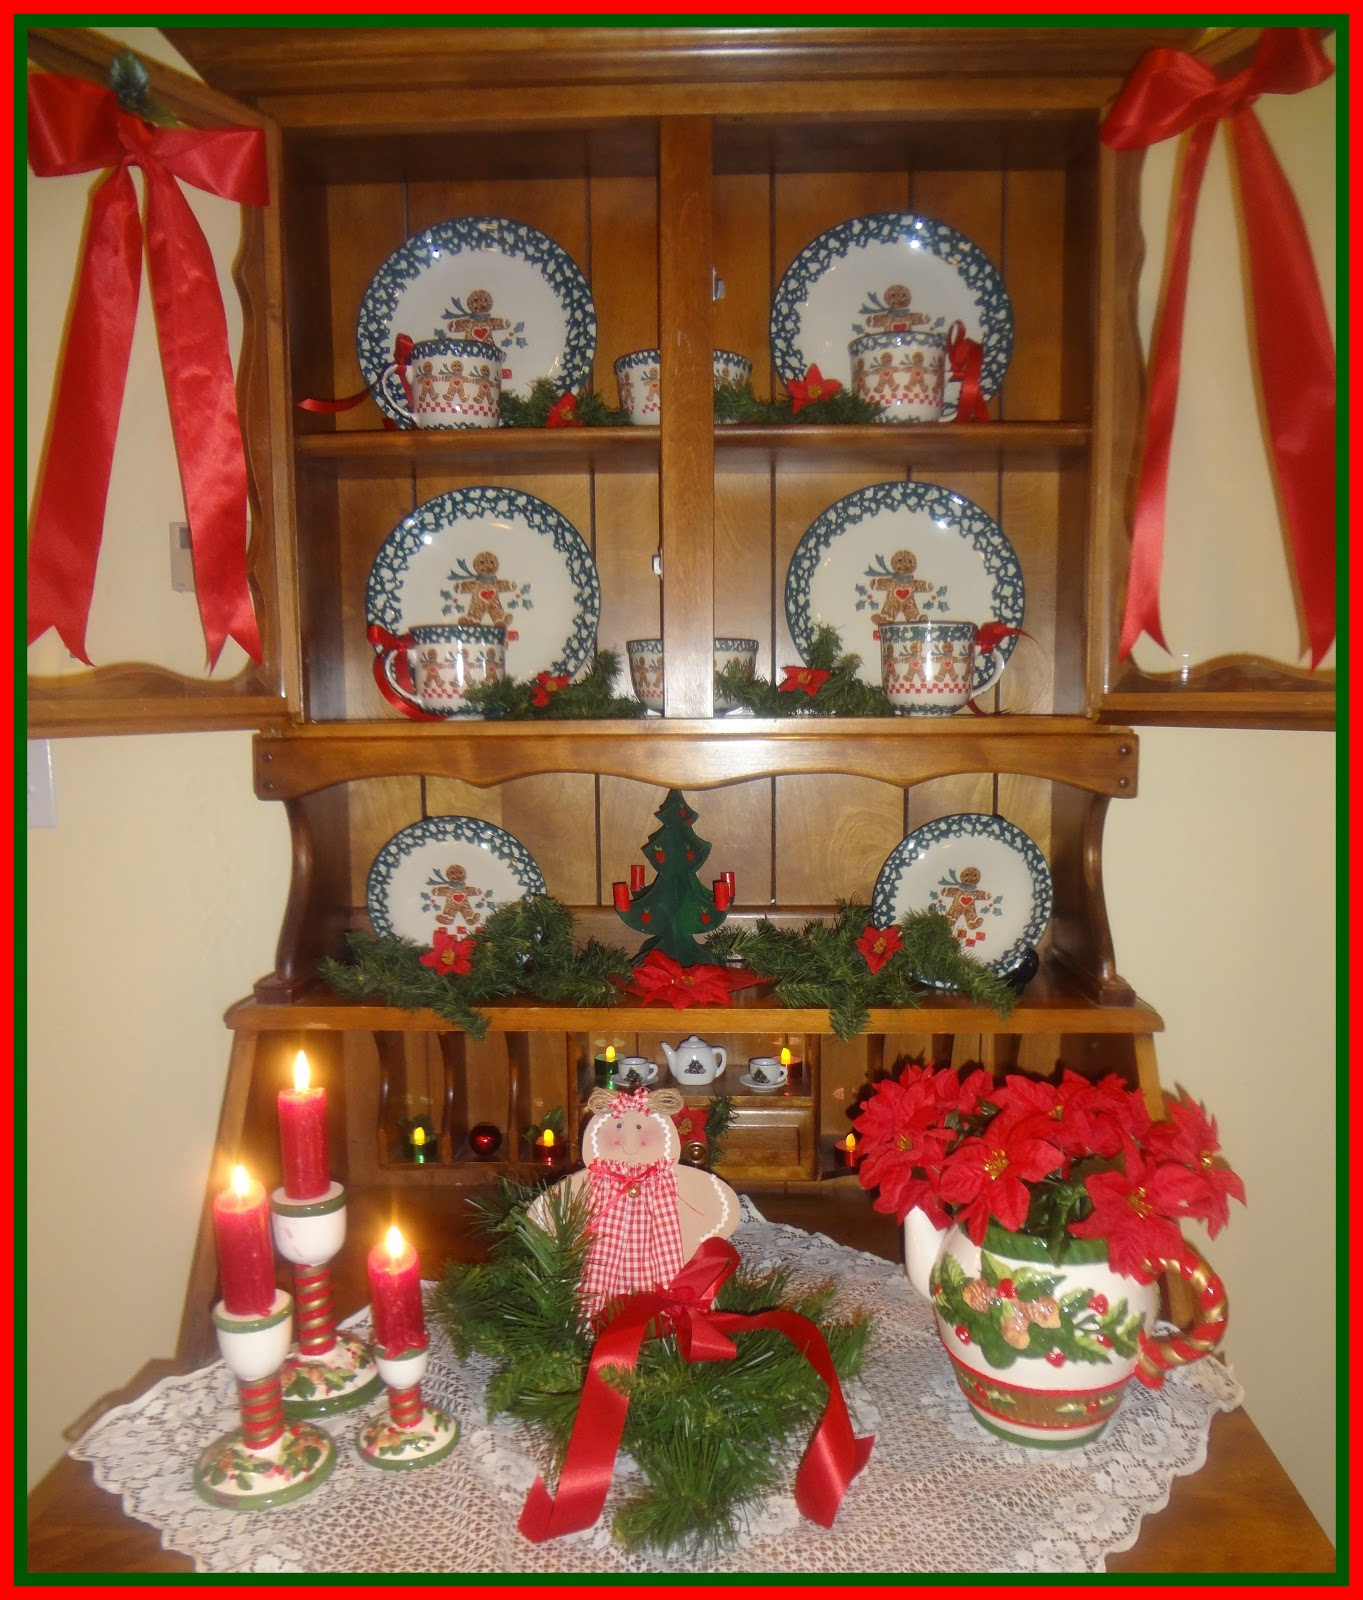 Decorating Ideas > Nanns Table Decorating My Home For Christmas ~ 012415_Christmas Decorating Ideas Hutch